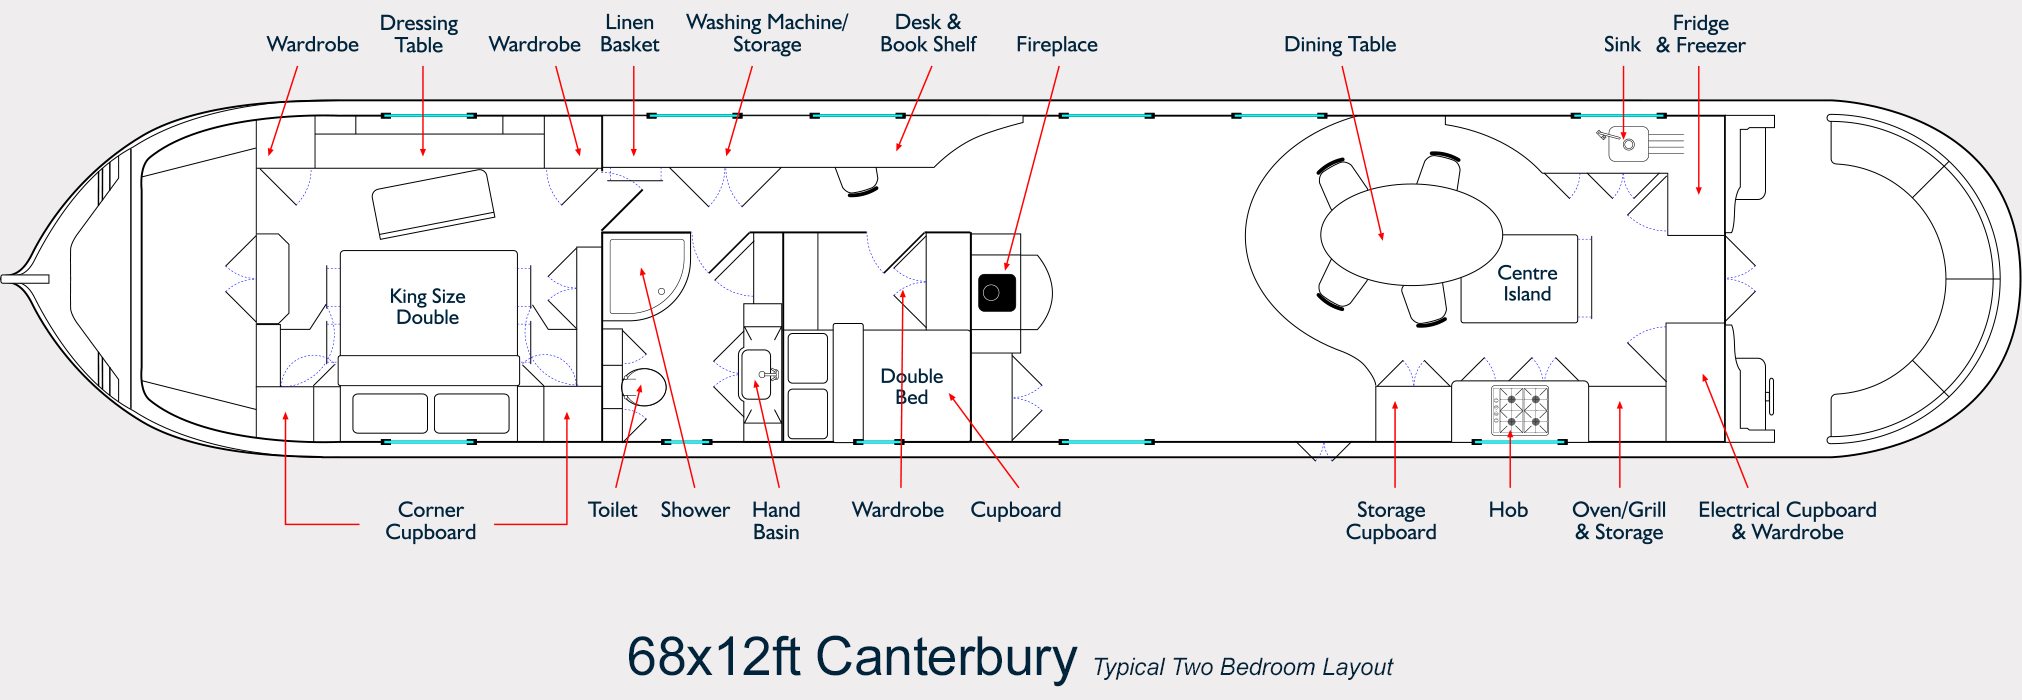 68ft x 12ft Canterbury Widebeam - Floor Plan